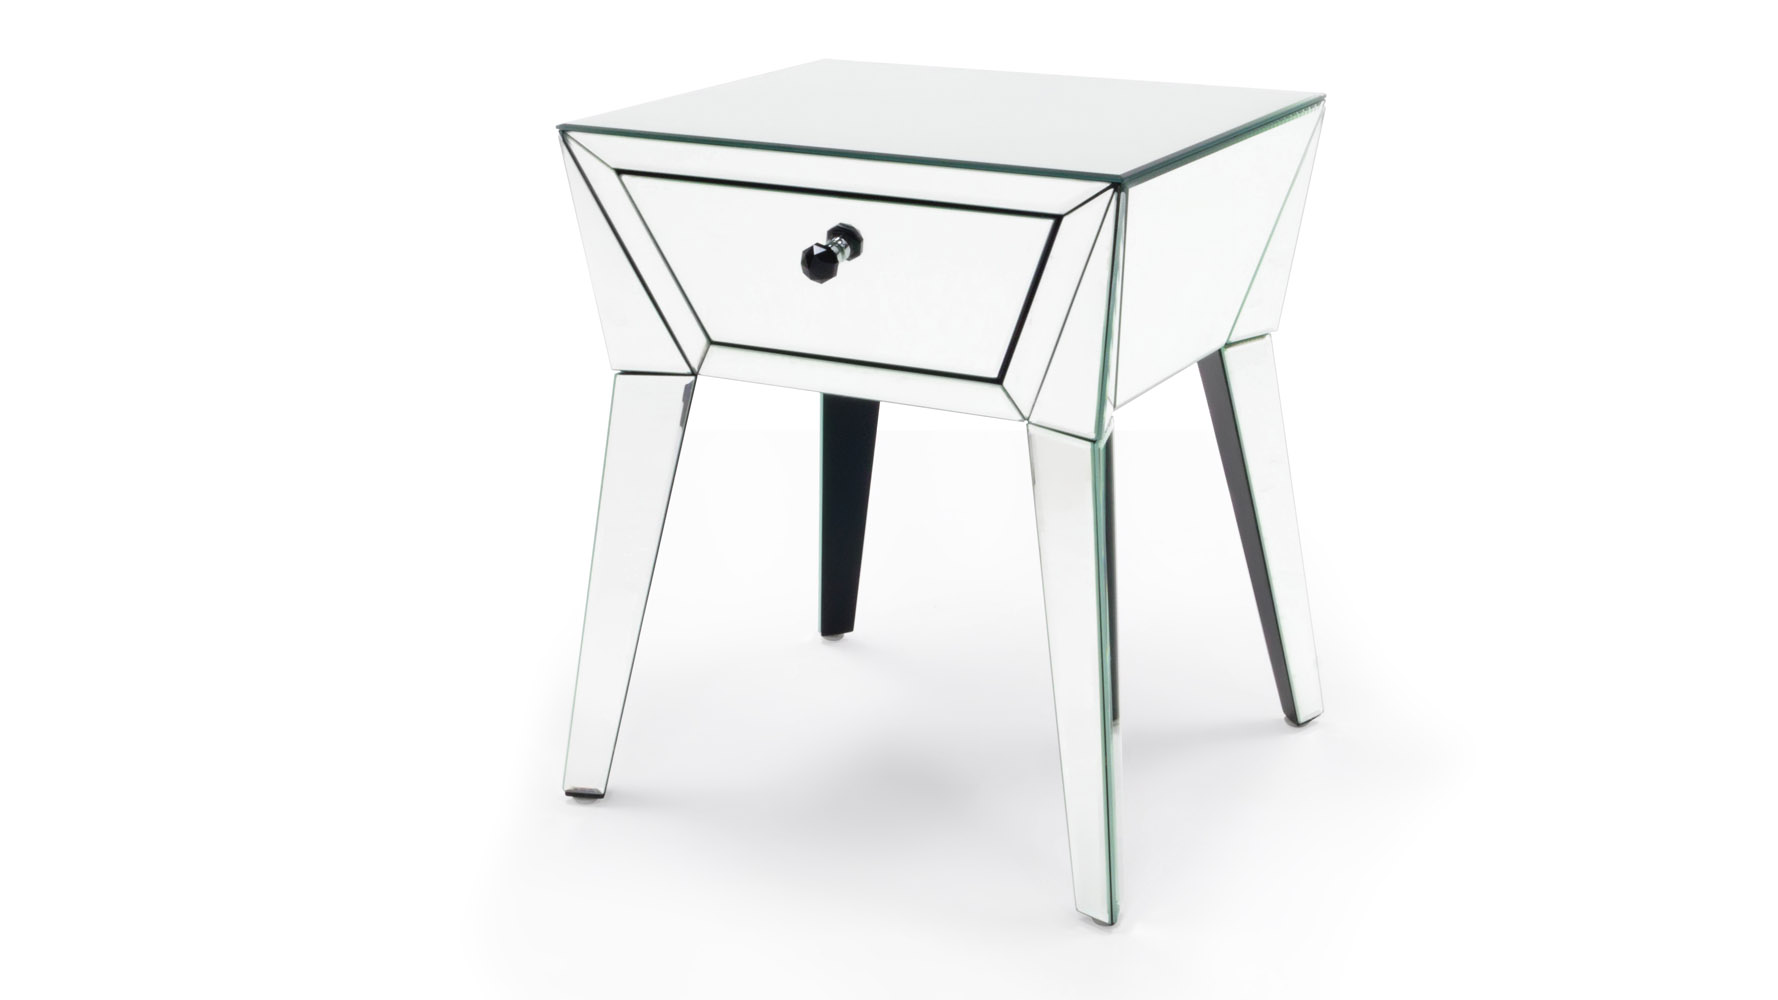 Lave mirrored glass end table zuri furniture